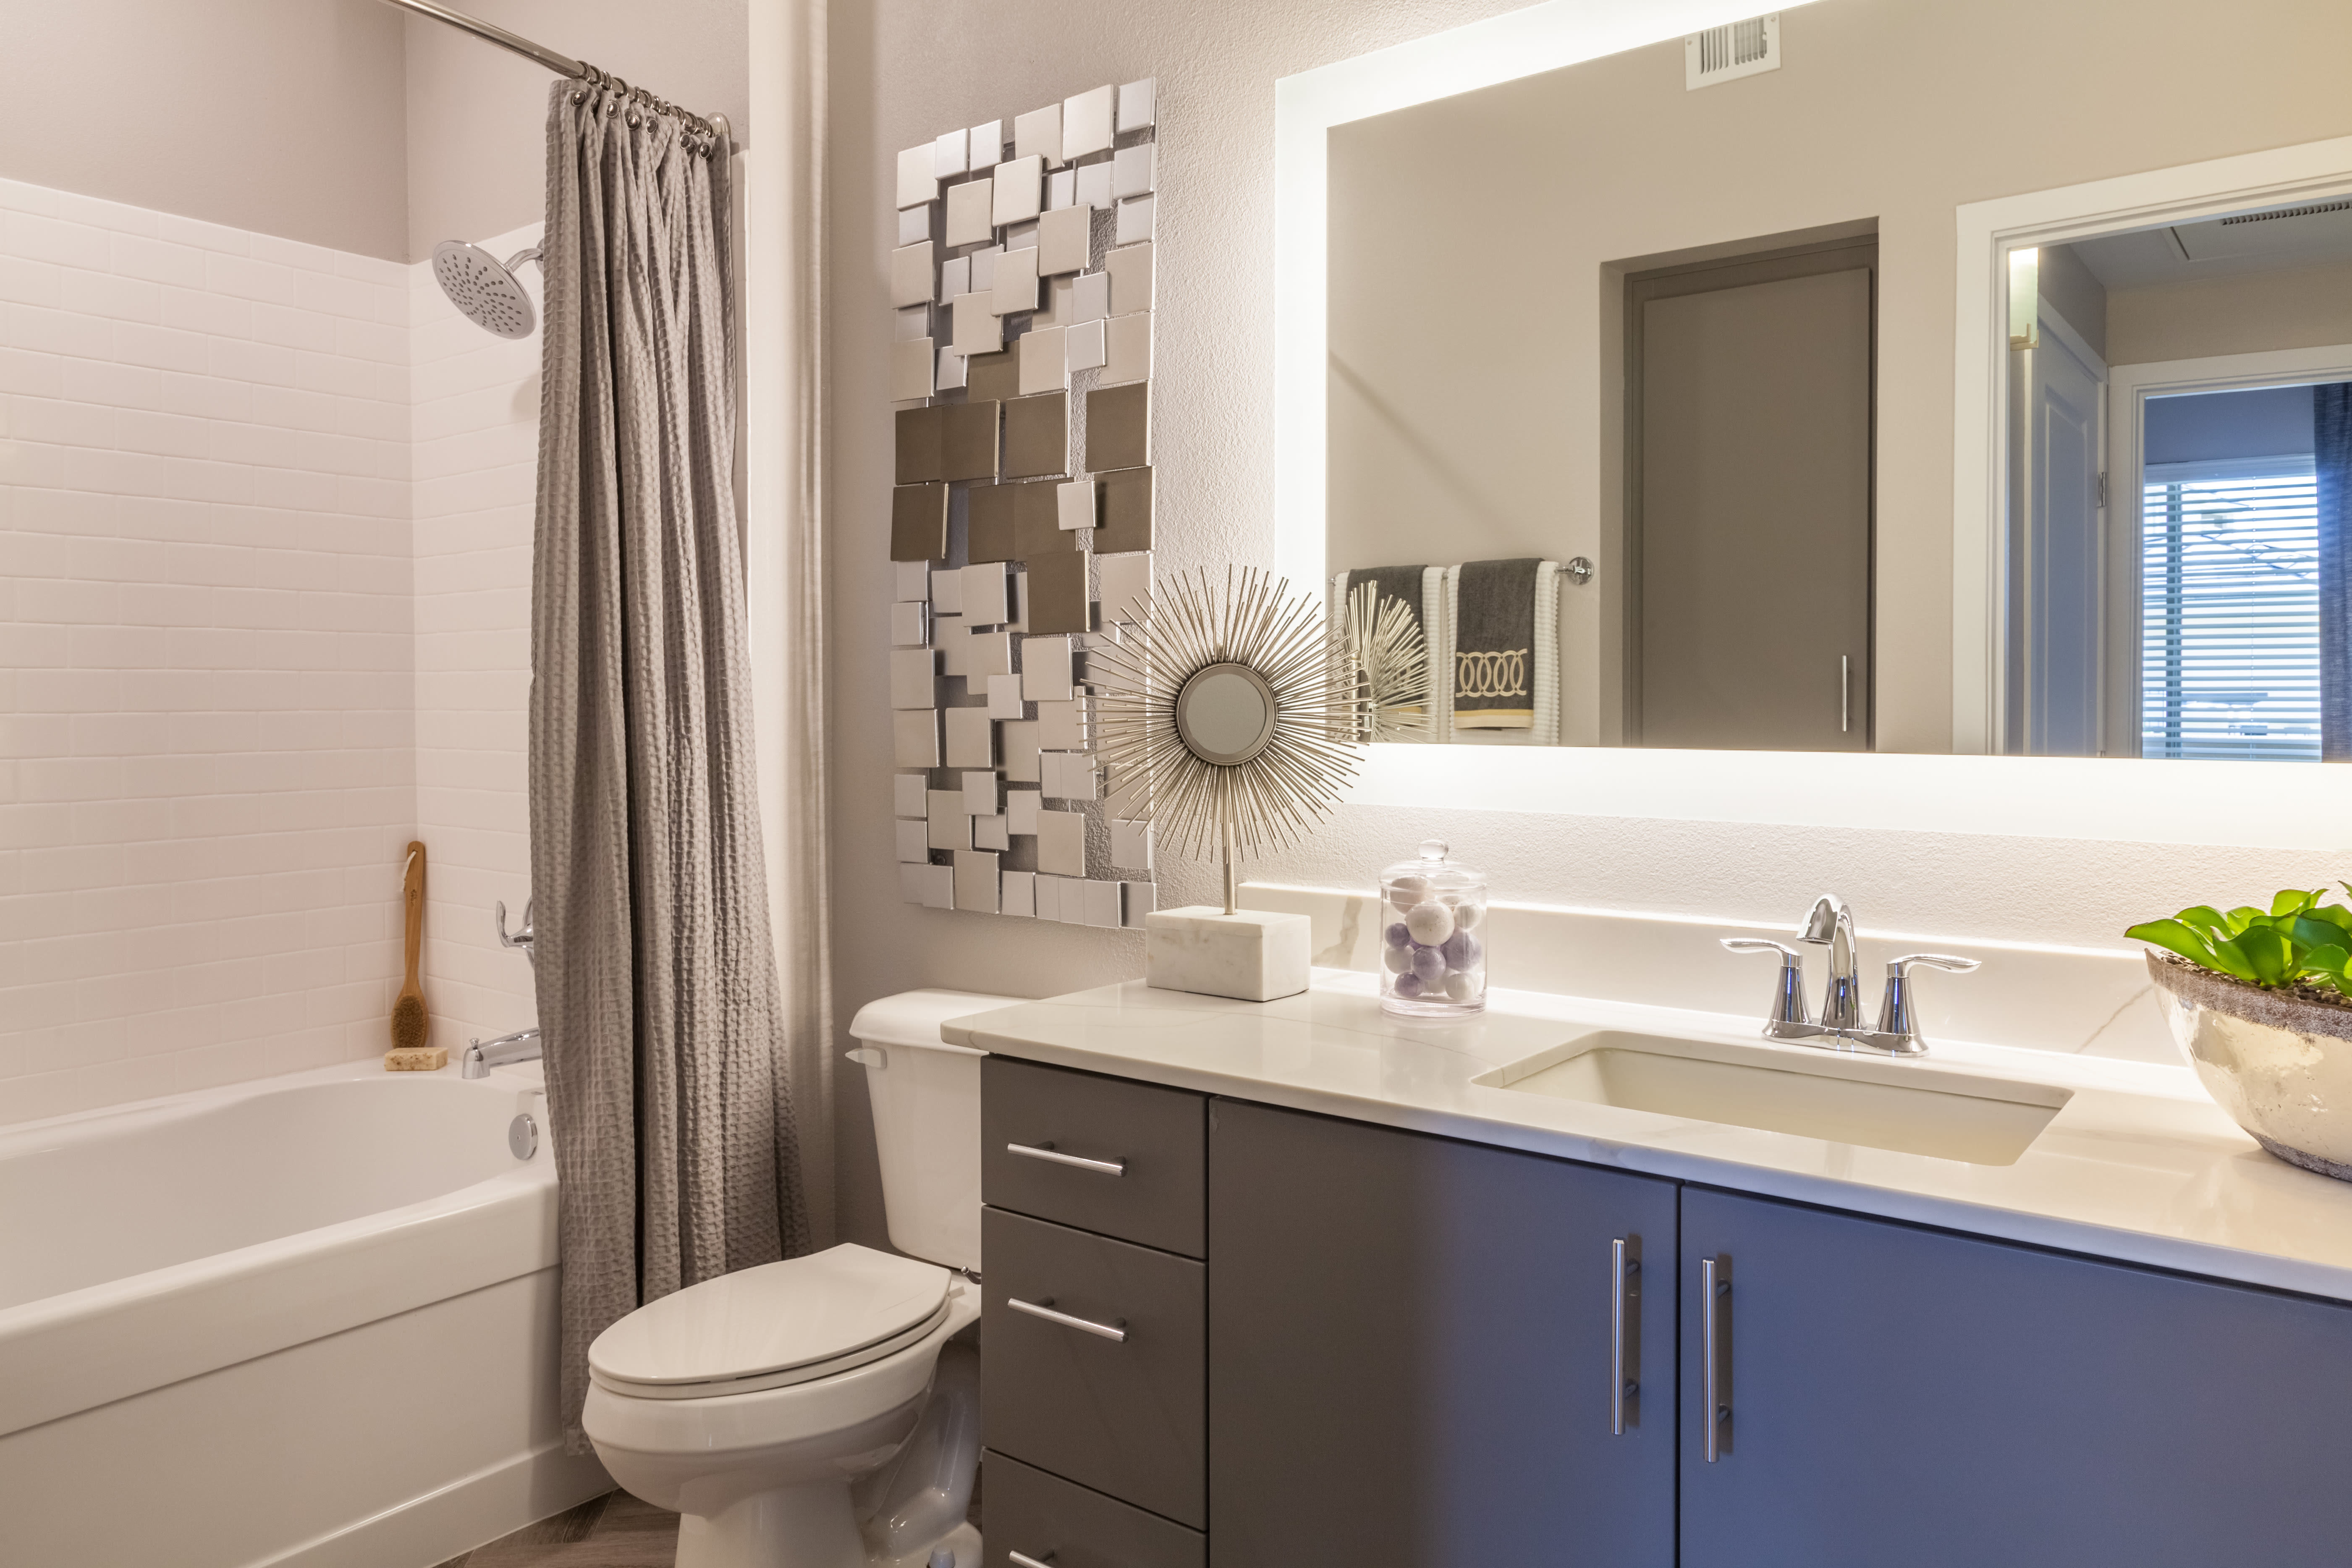 Luxurious bathroom in a model home at Olympus Alameda in Albuquerque, New Mexico